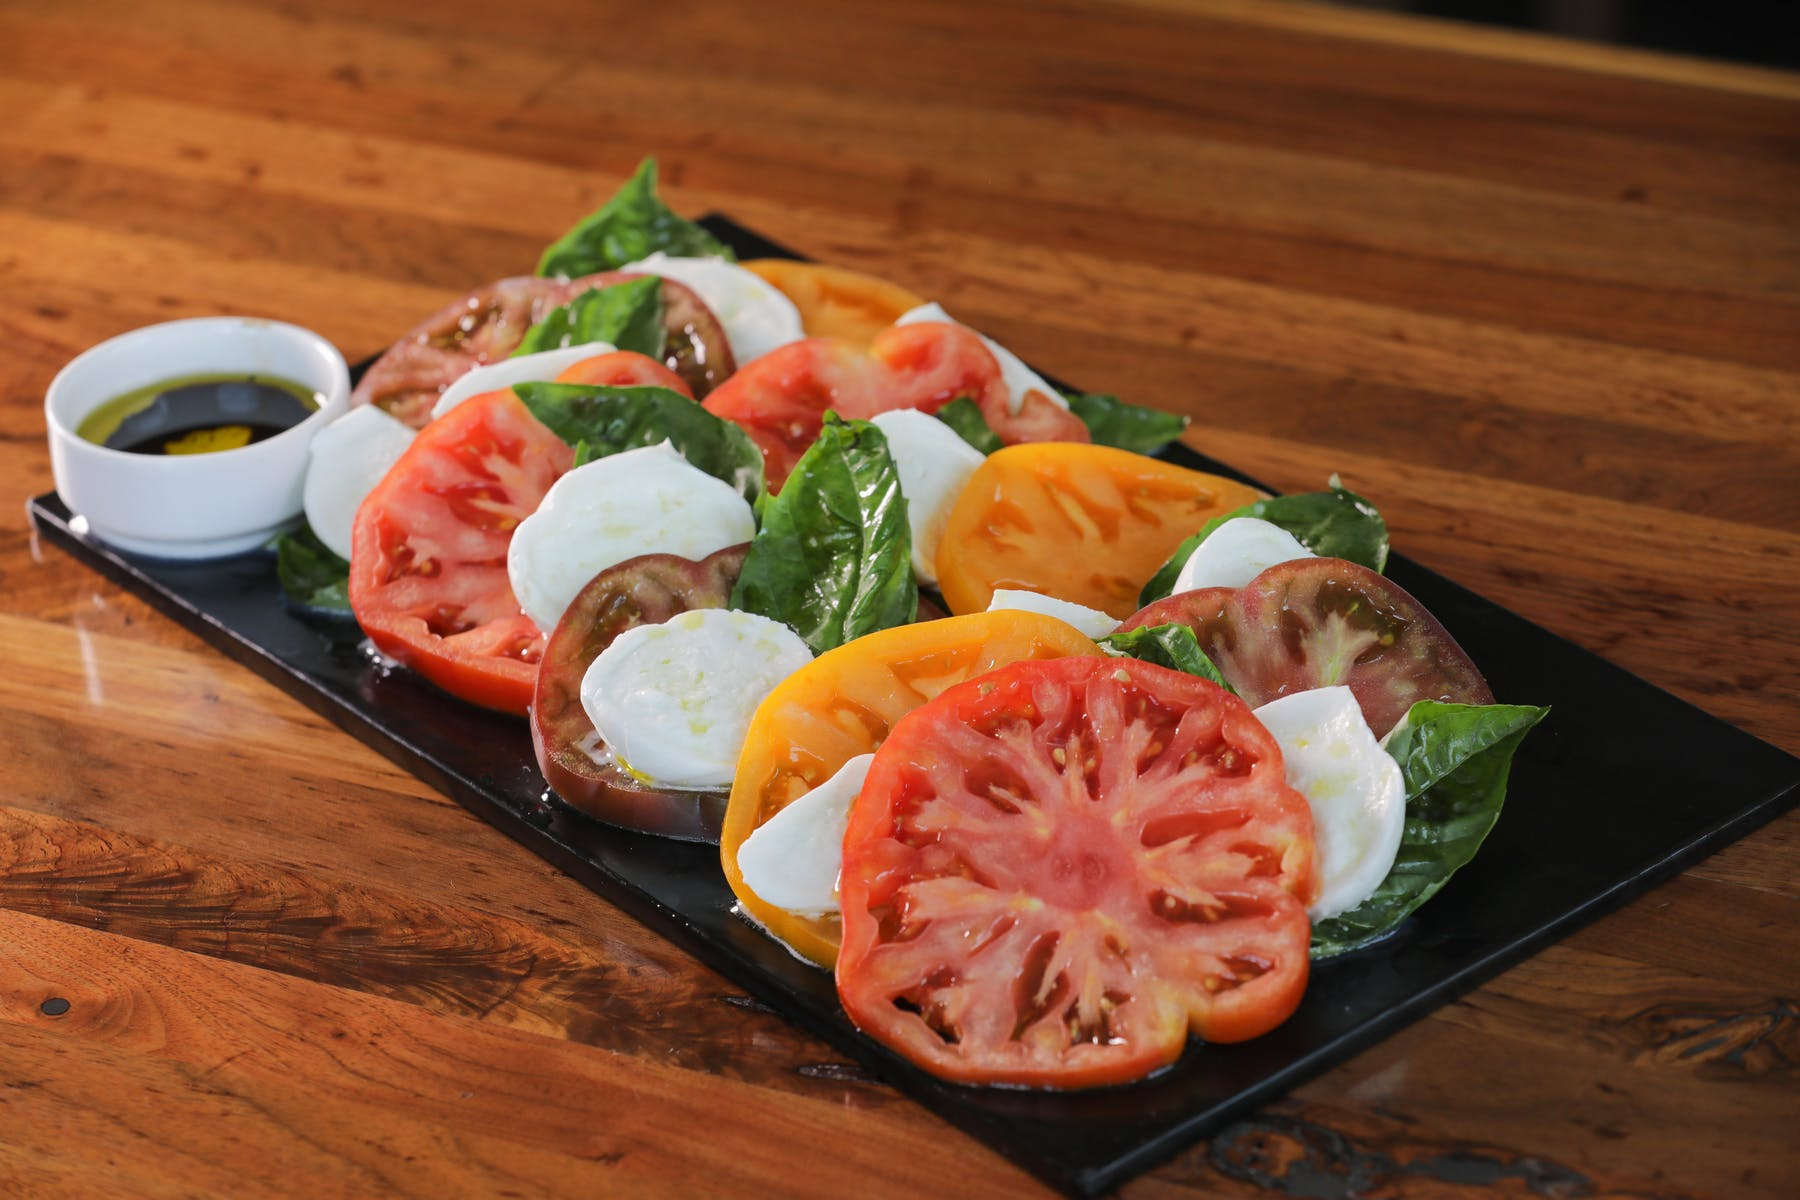 tomato slices with mozzarella and spinach